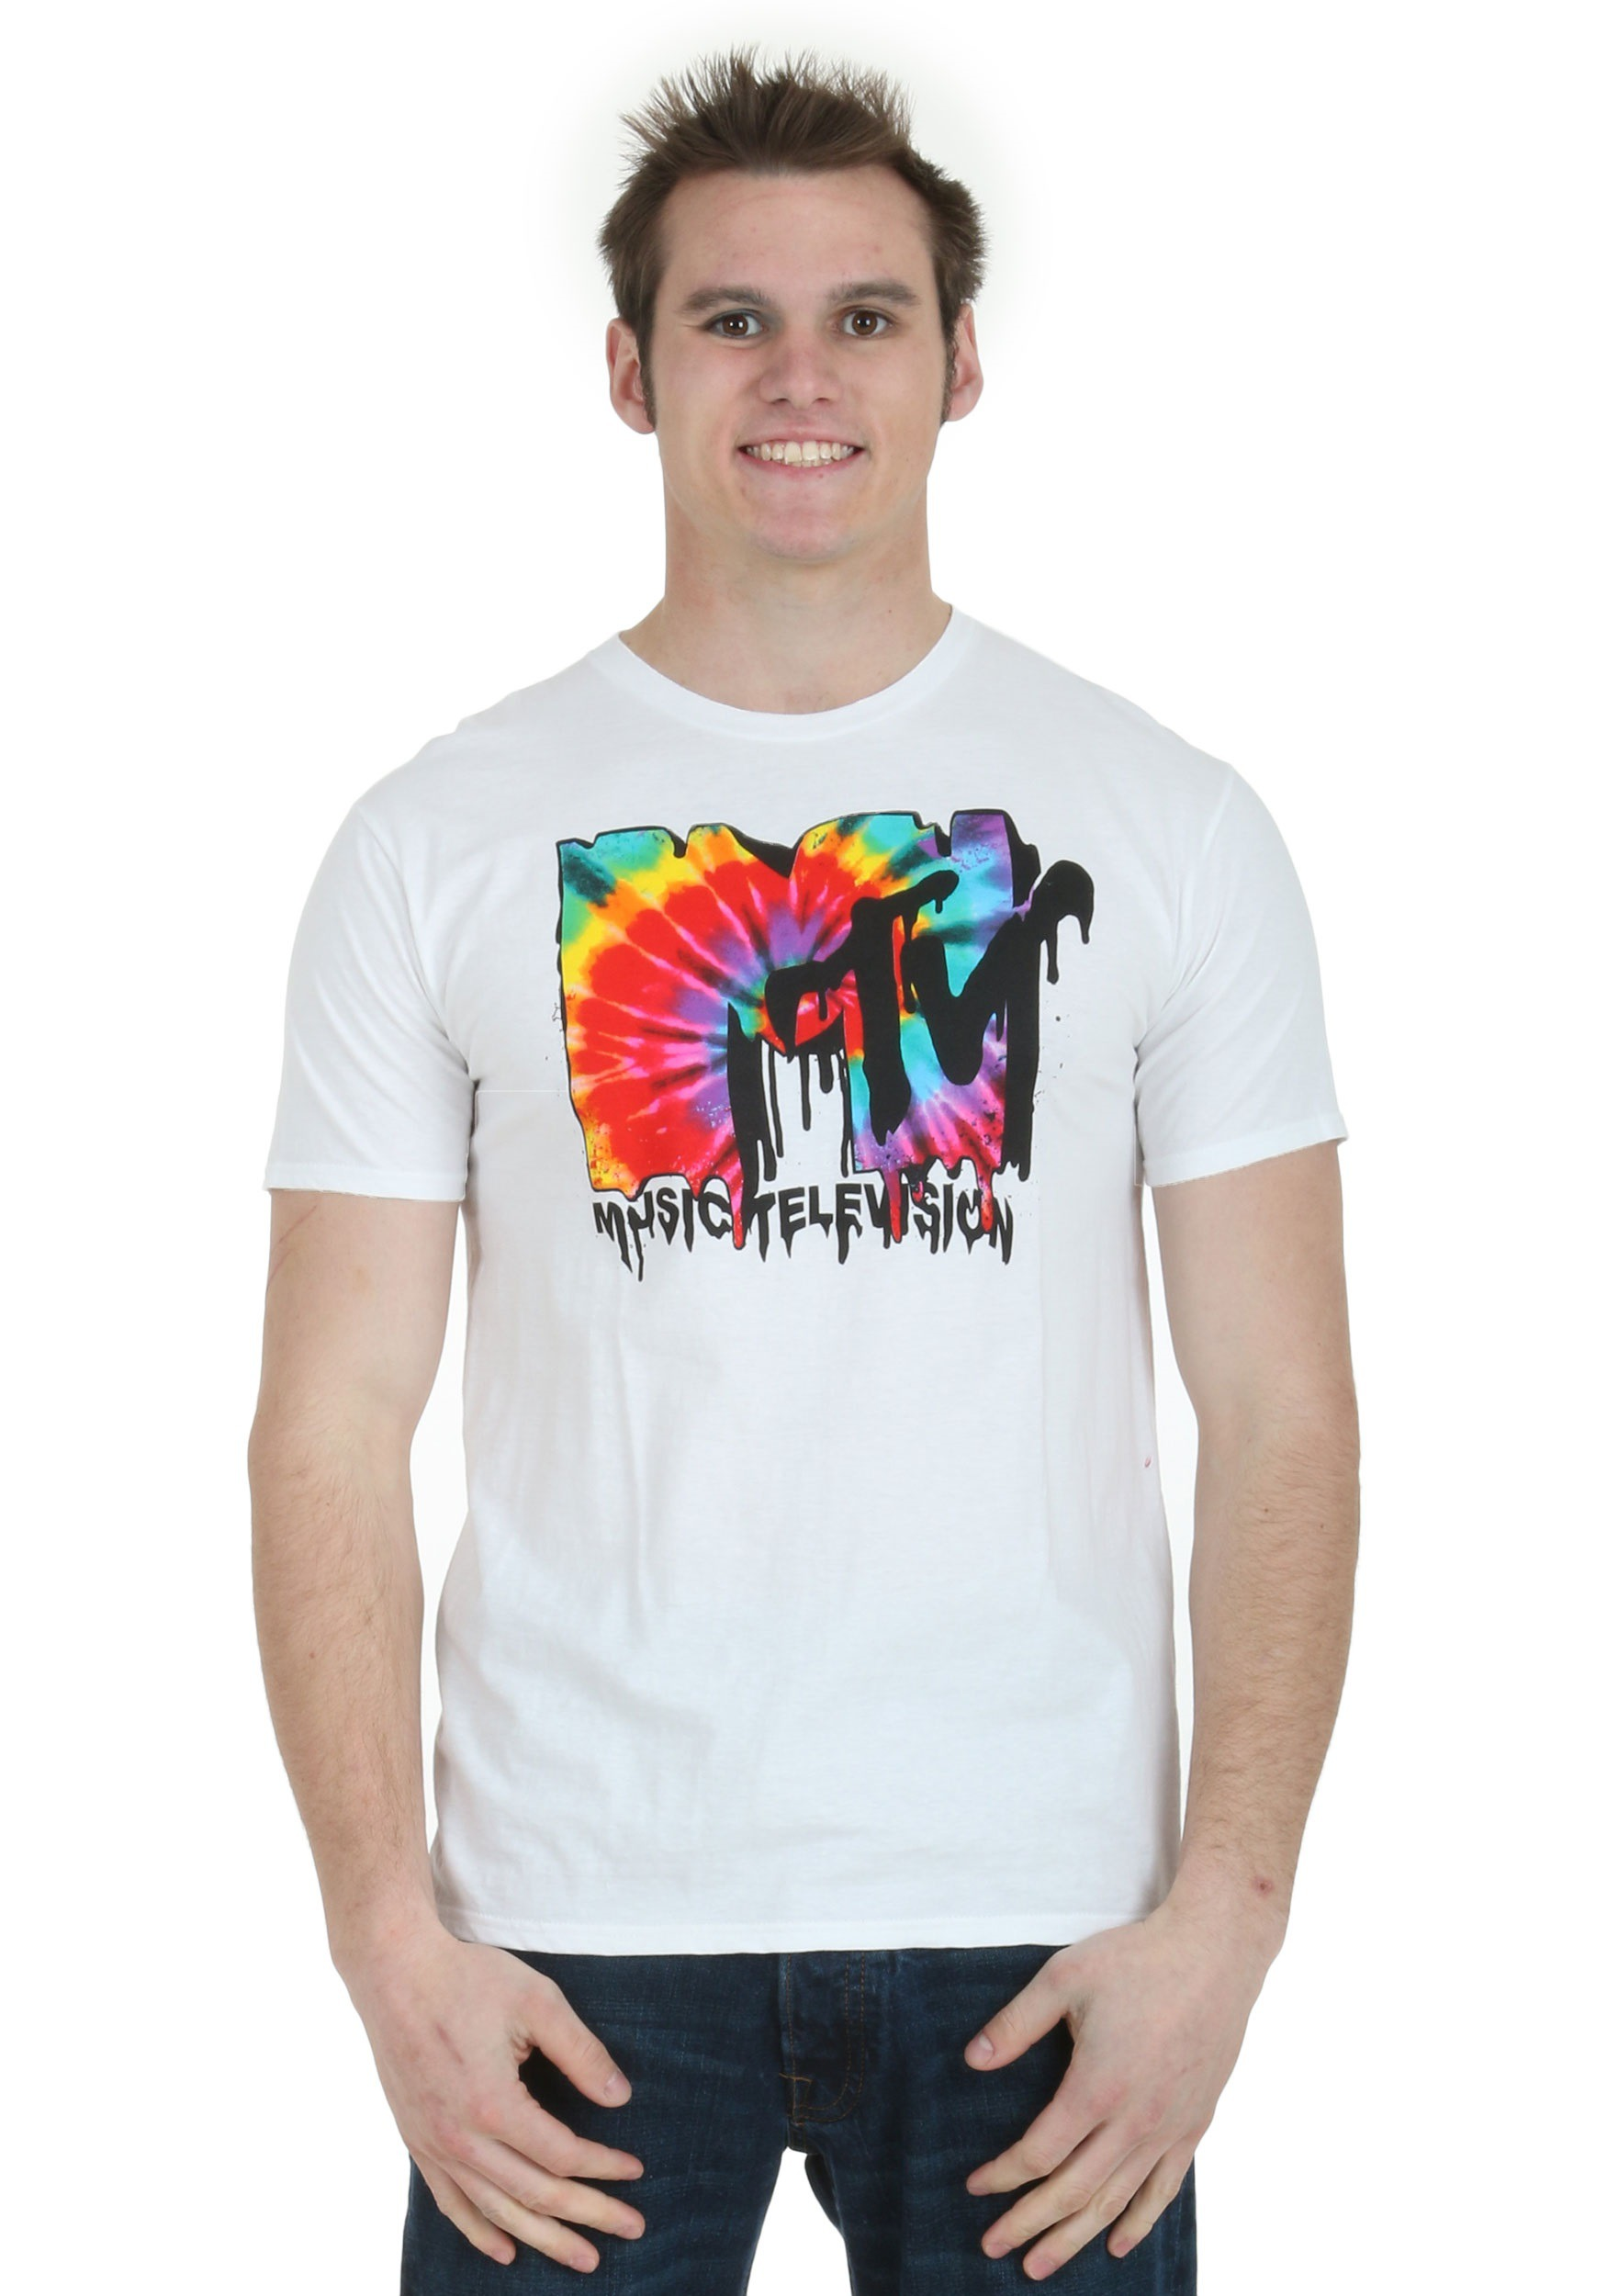 Mtv melted tie dye logo men 39 s t shirt for Tahari t shirt mens